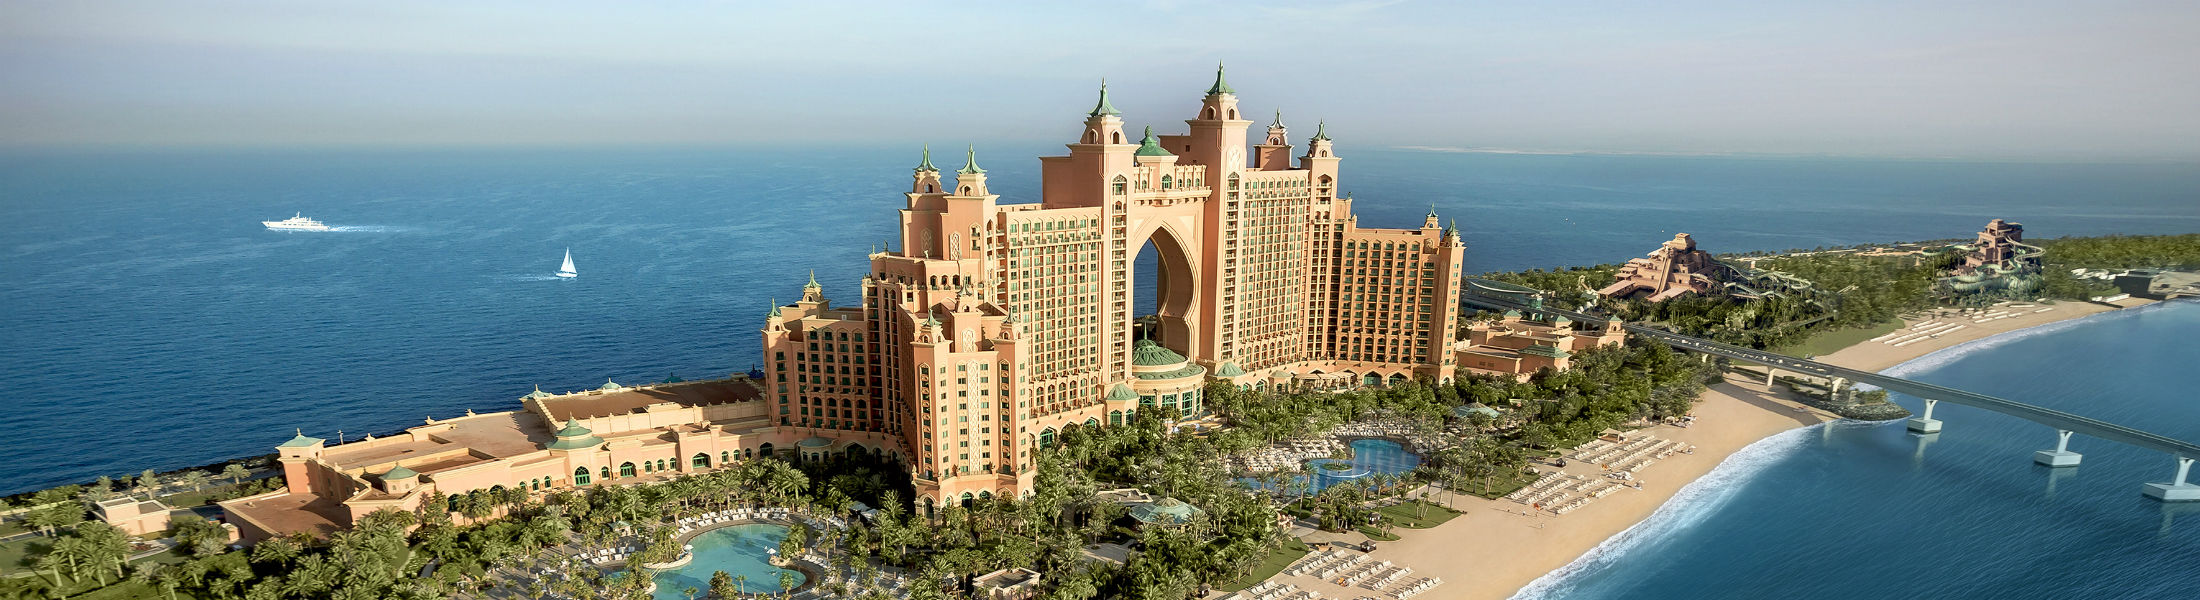 Dubai - Atlantis Resort